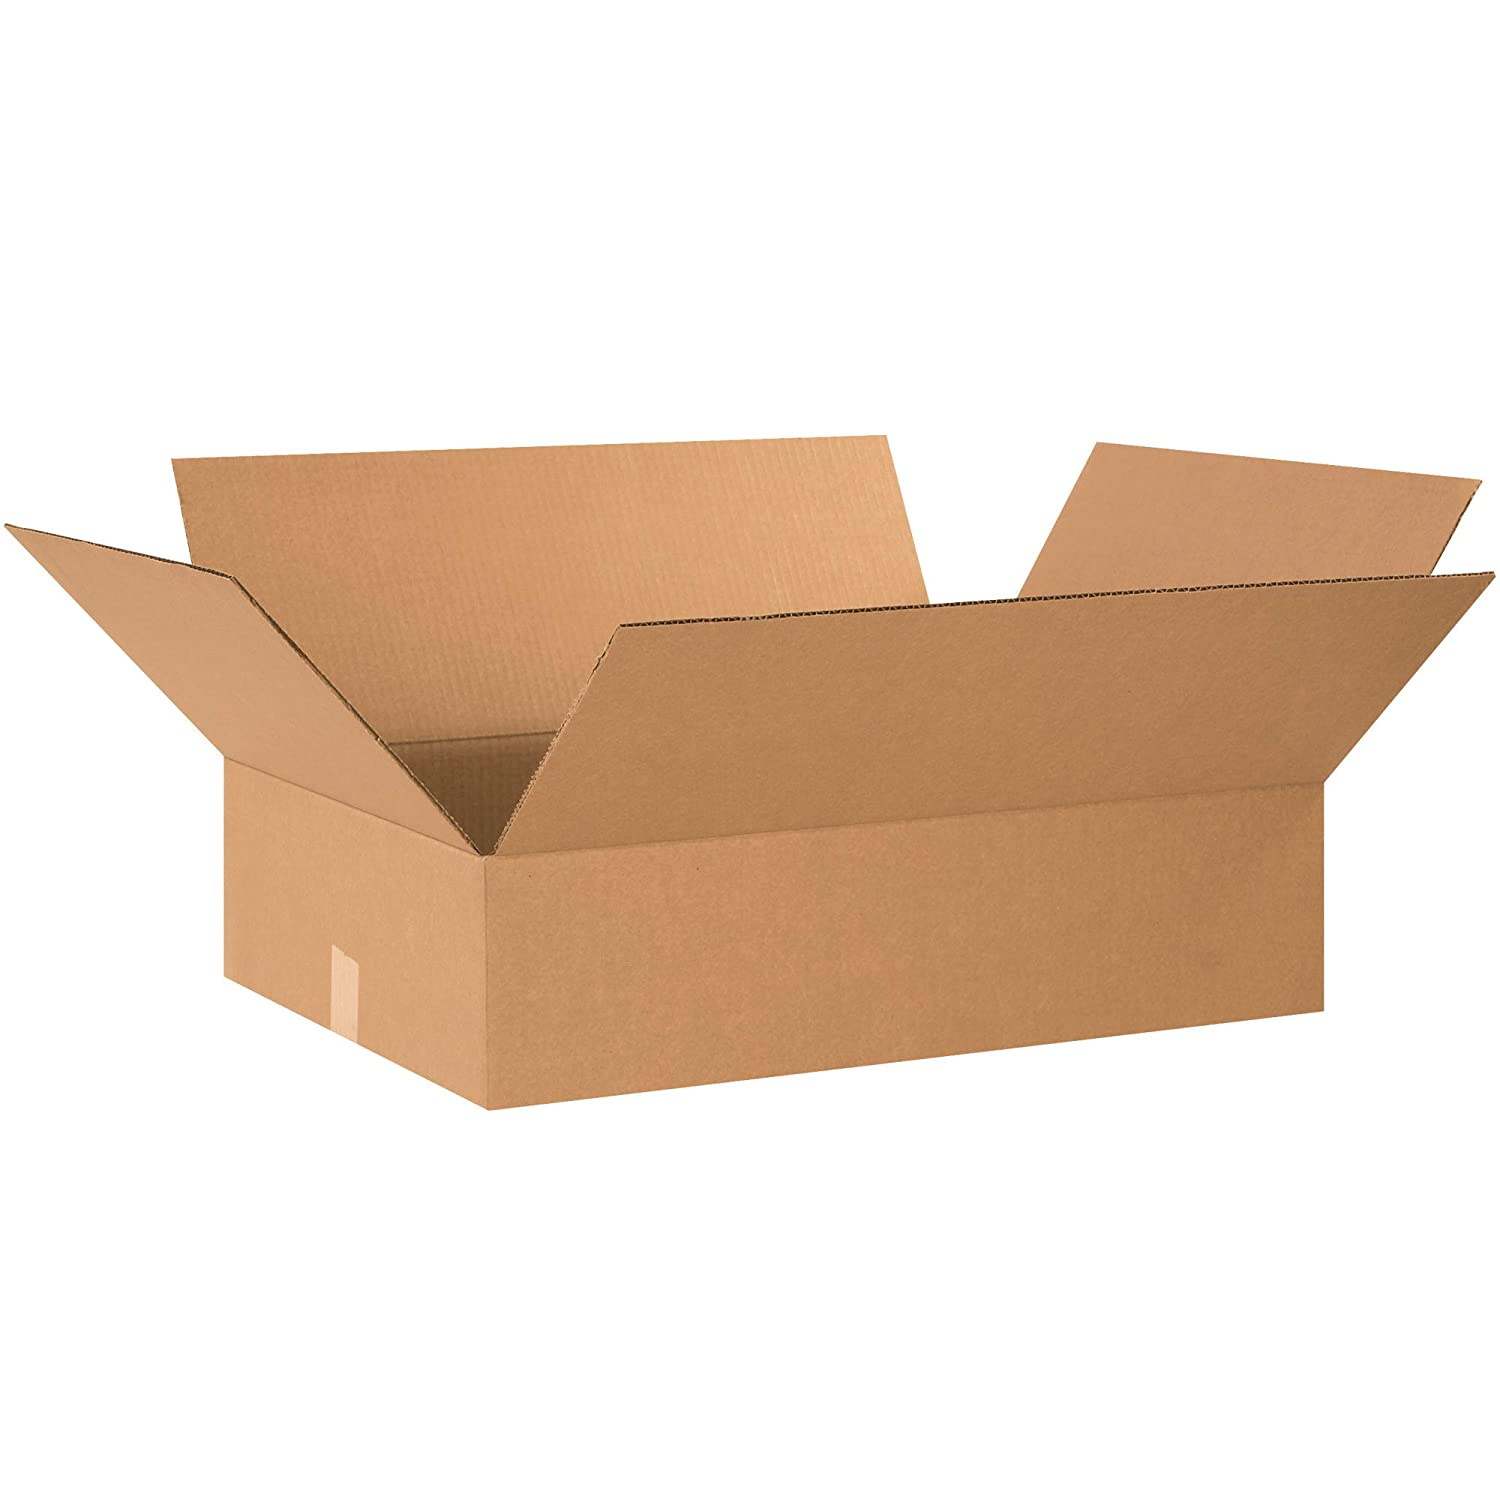 Max 63% OFF Aviditi Recycled Max 87% OFF Corrugated Cardboard Boxes 24